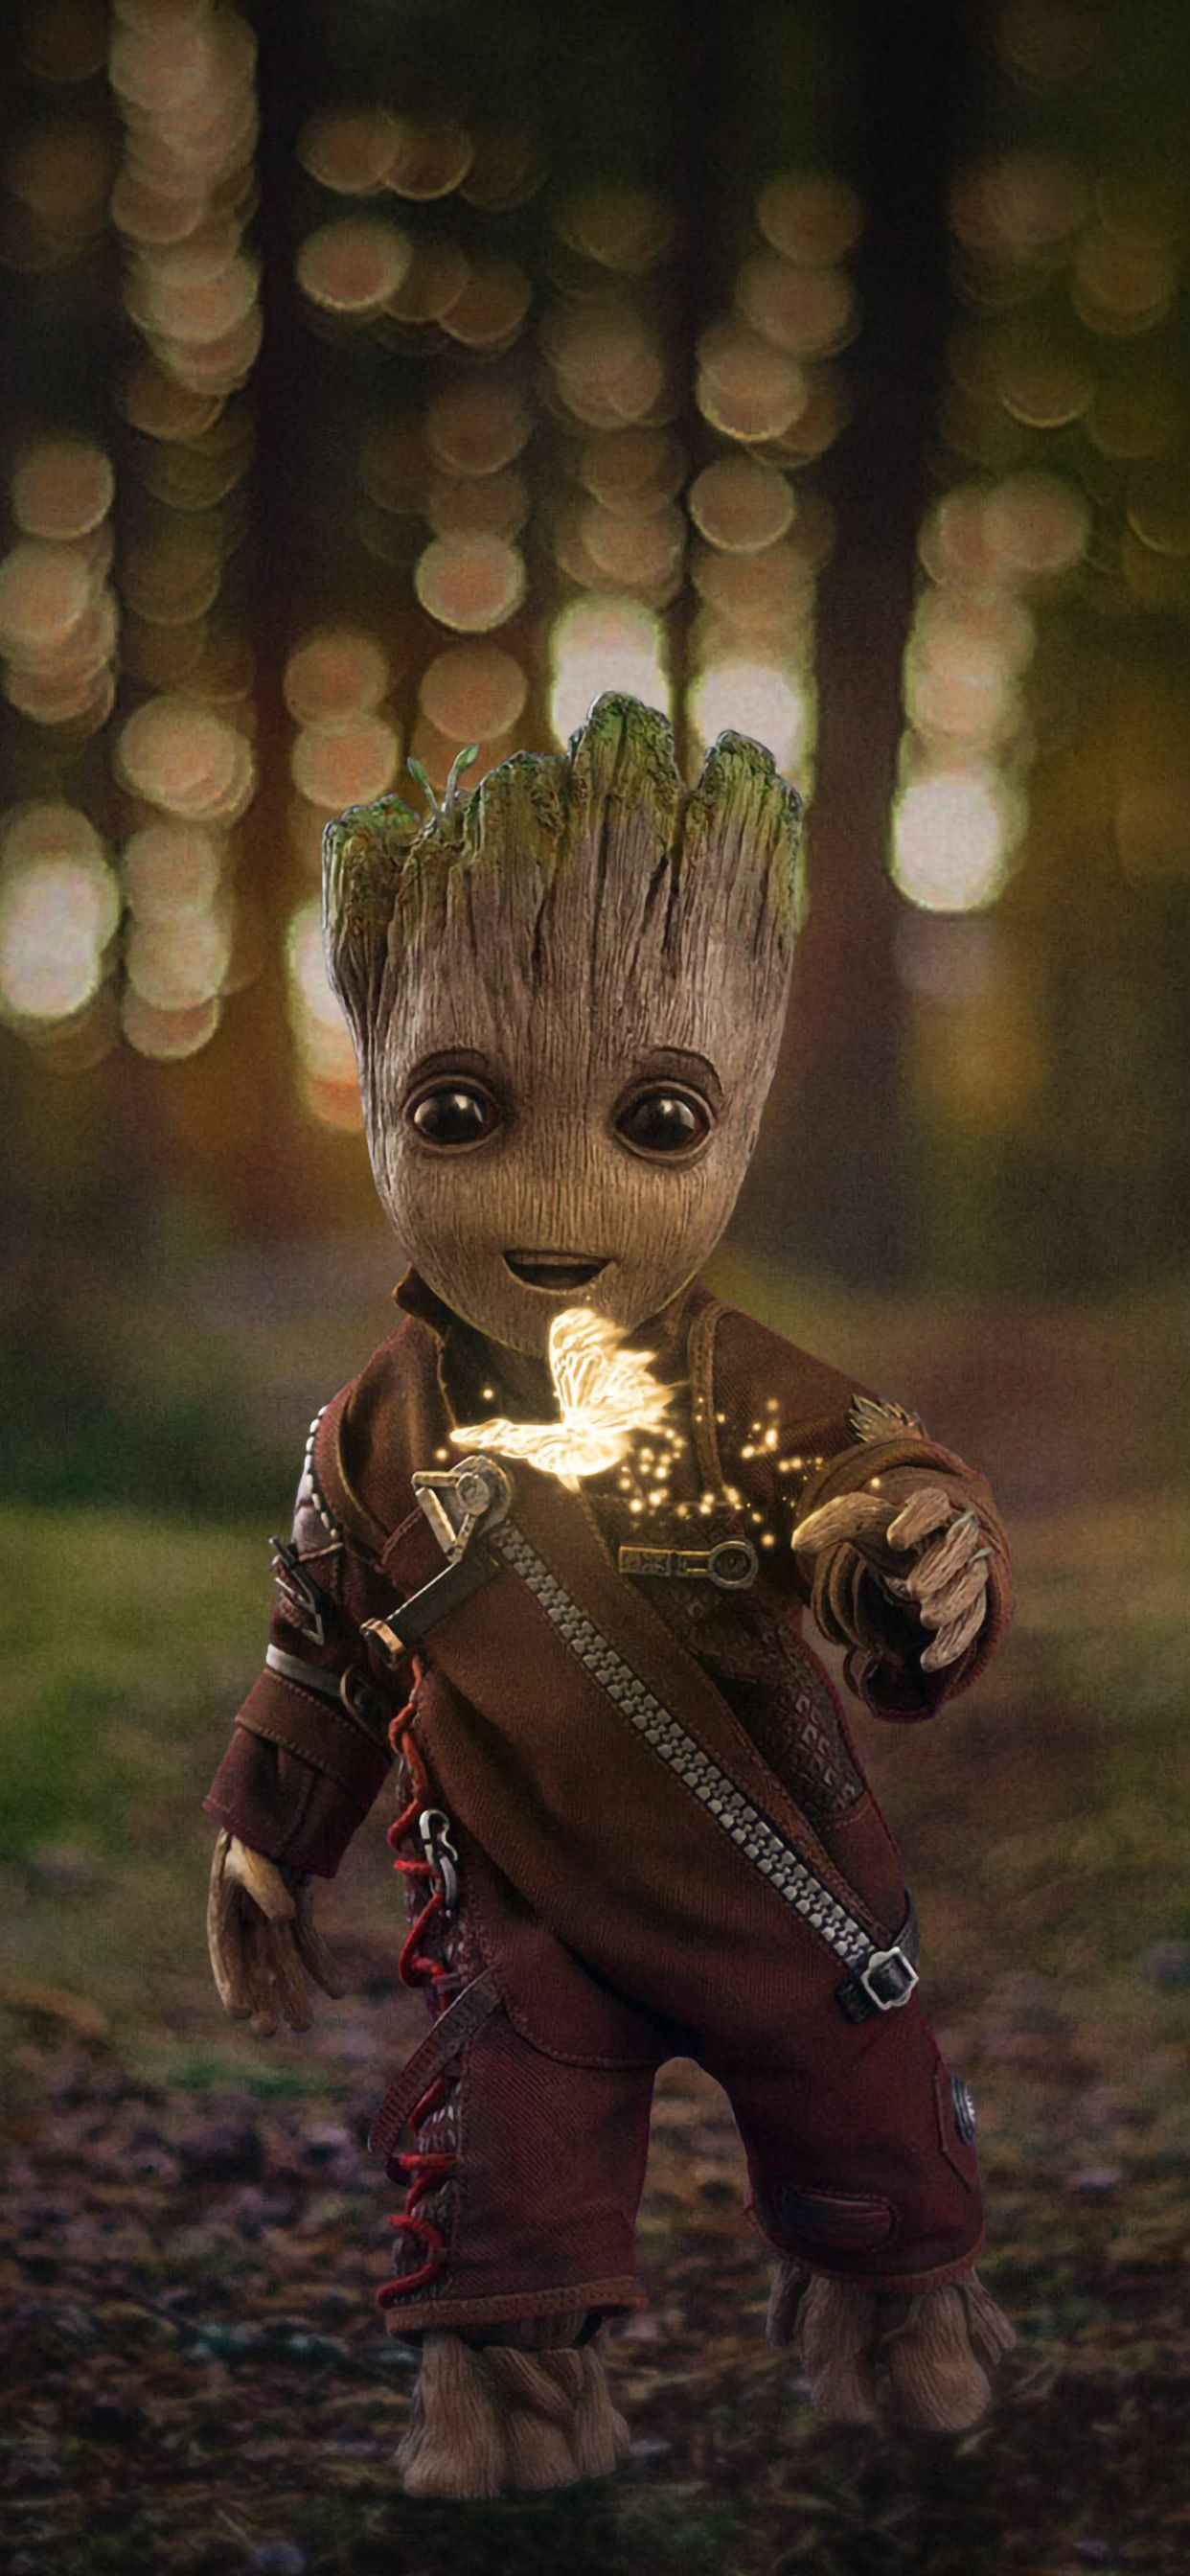 Groot Iphone Wallpapers Top Free Groot Iphone Backgrounds Wallpaperaccess